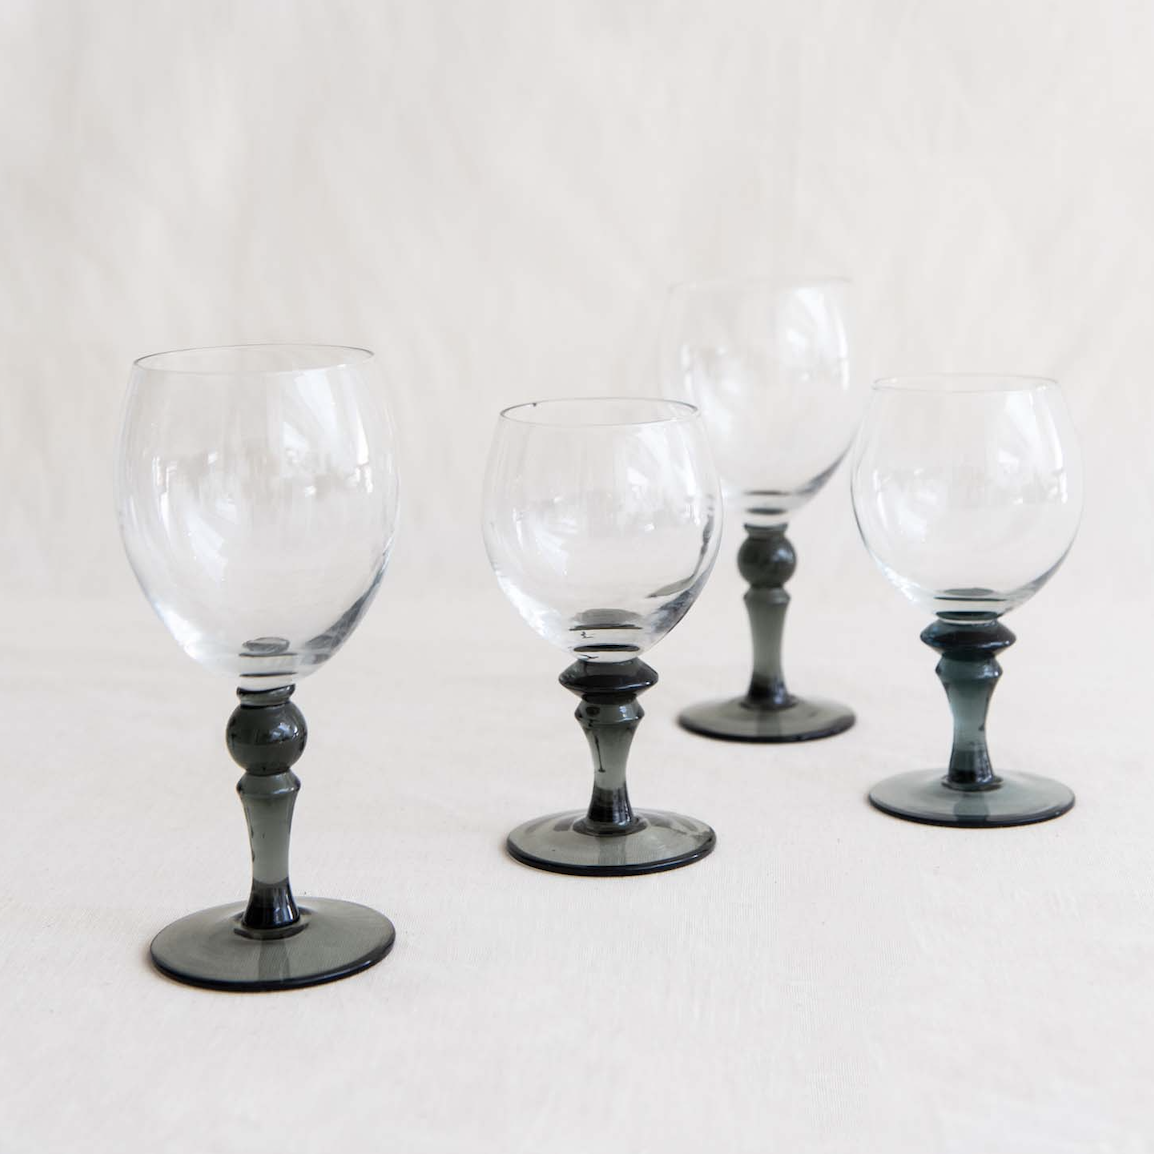 Ove red wine glass - set of 4